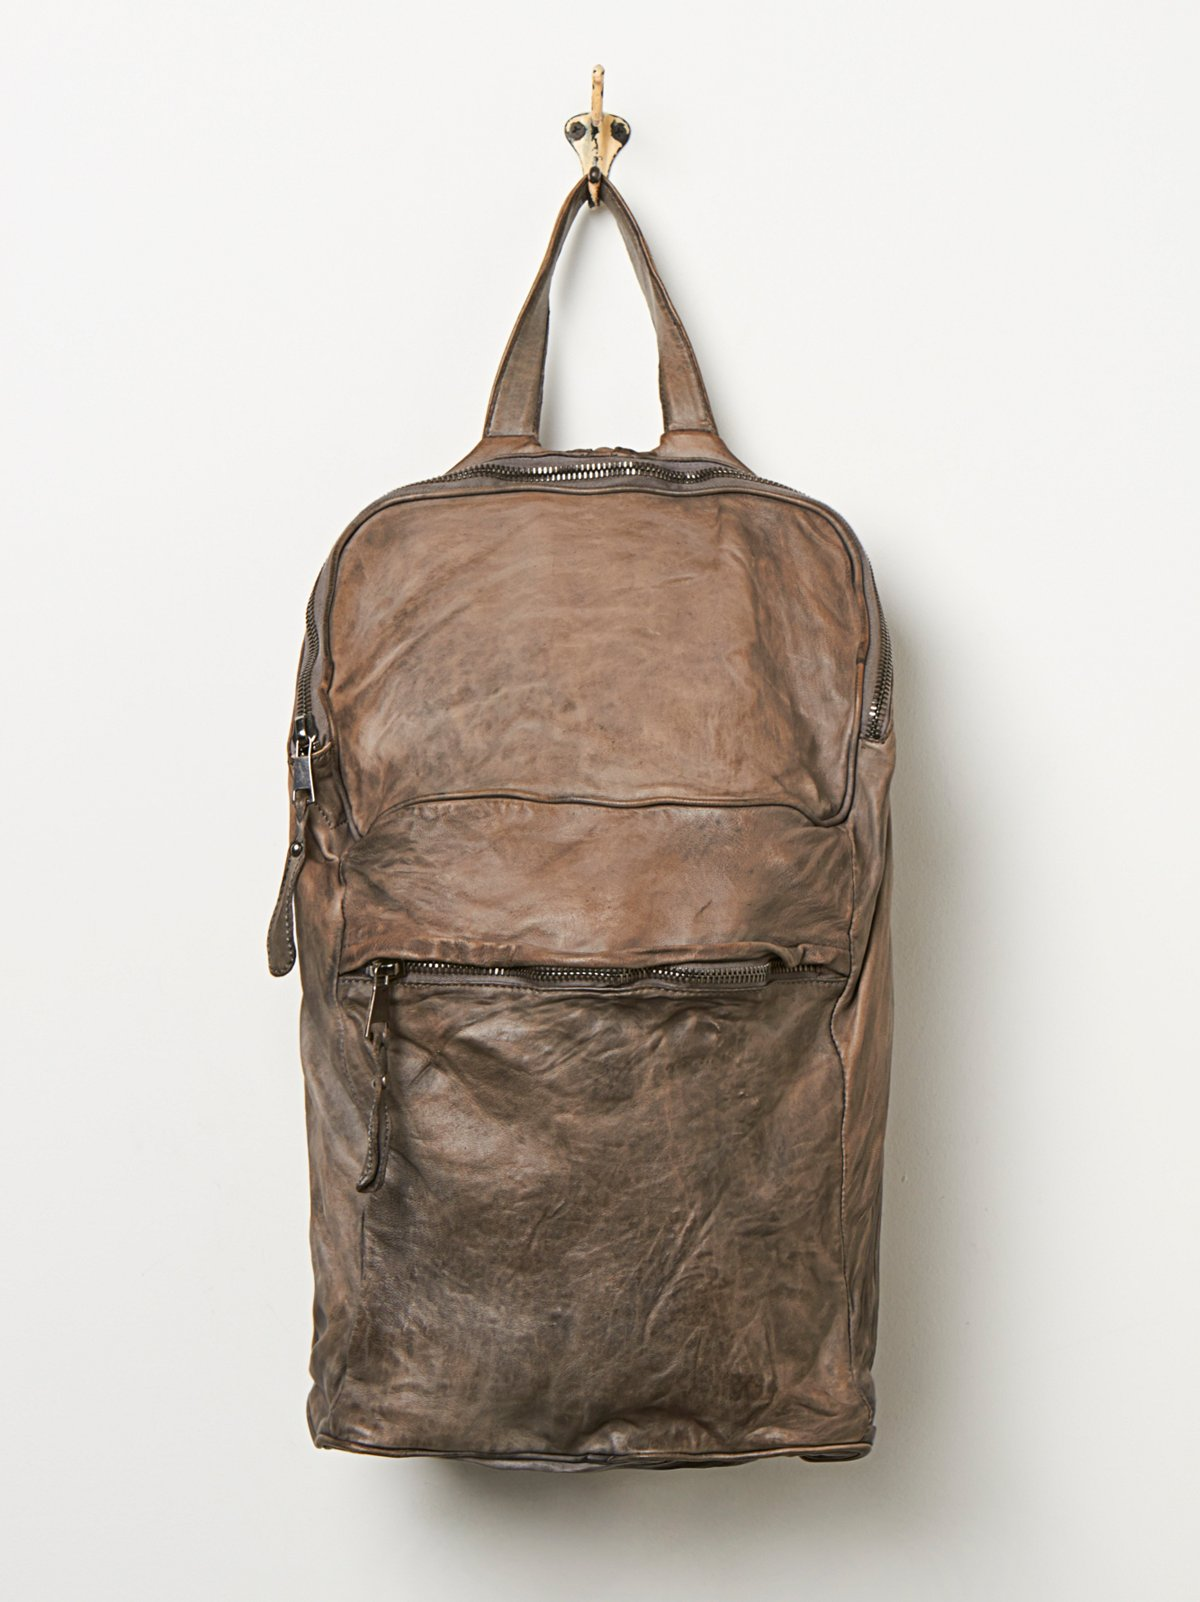 Giogrio Brato Leather Backpack